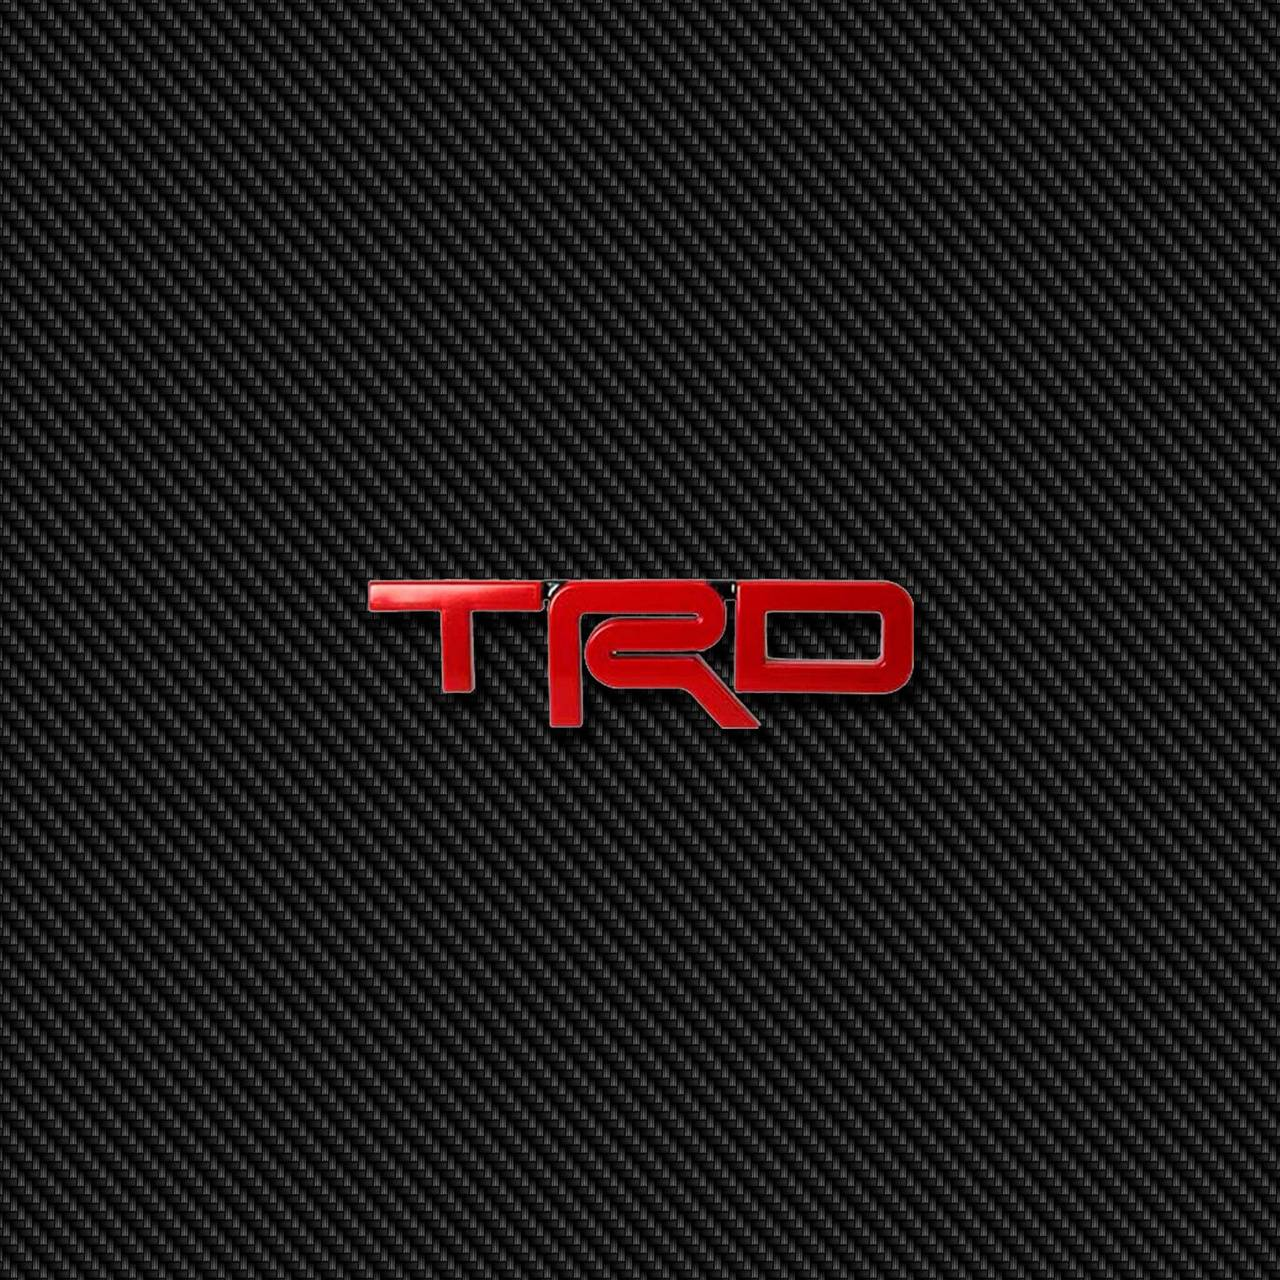 Toyota TRD Carbon Wallpaper By Bruceiras